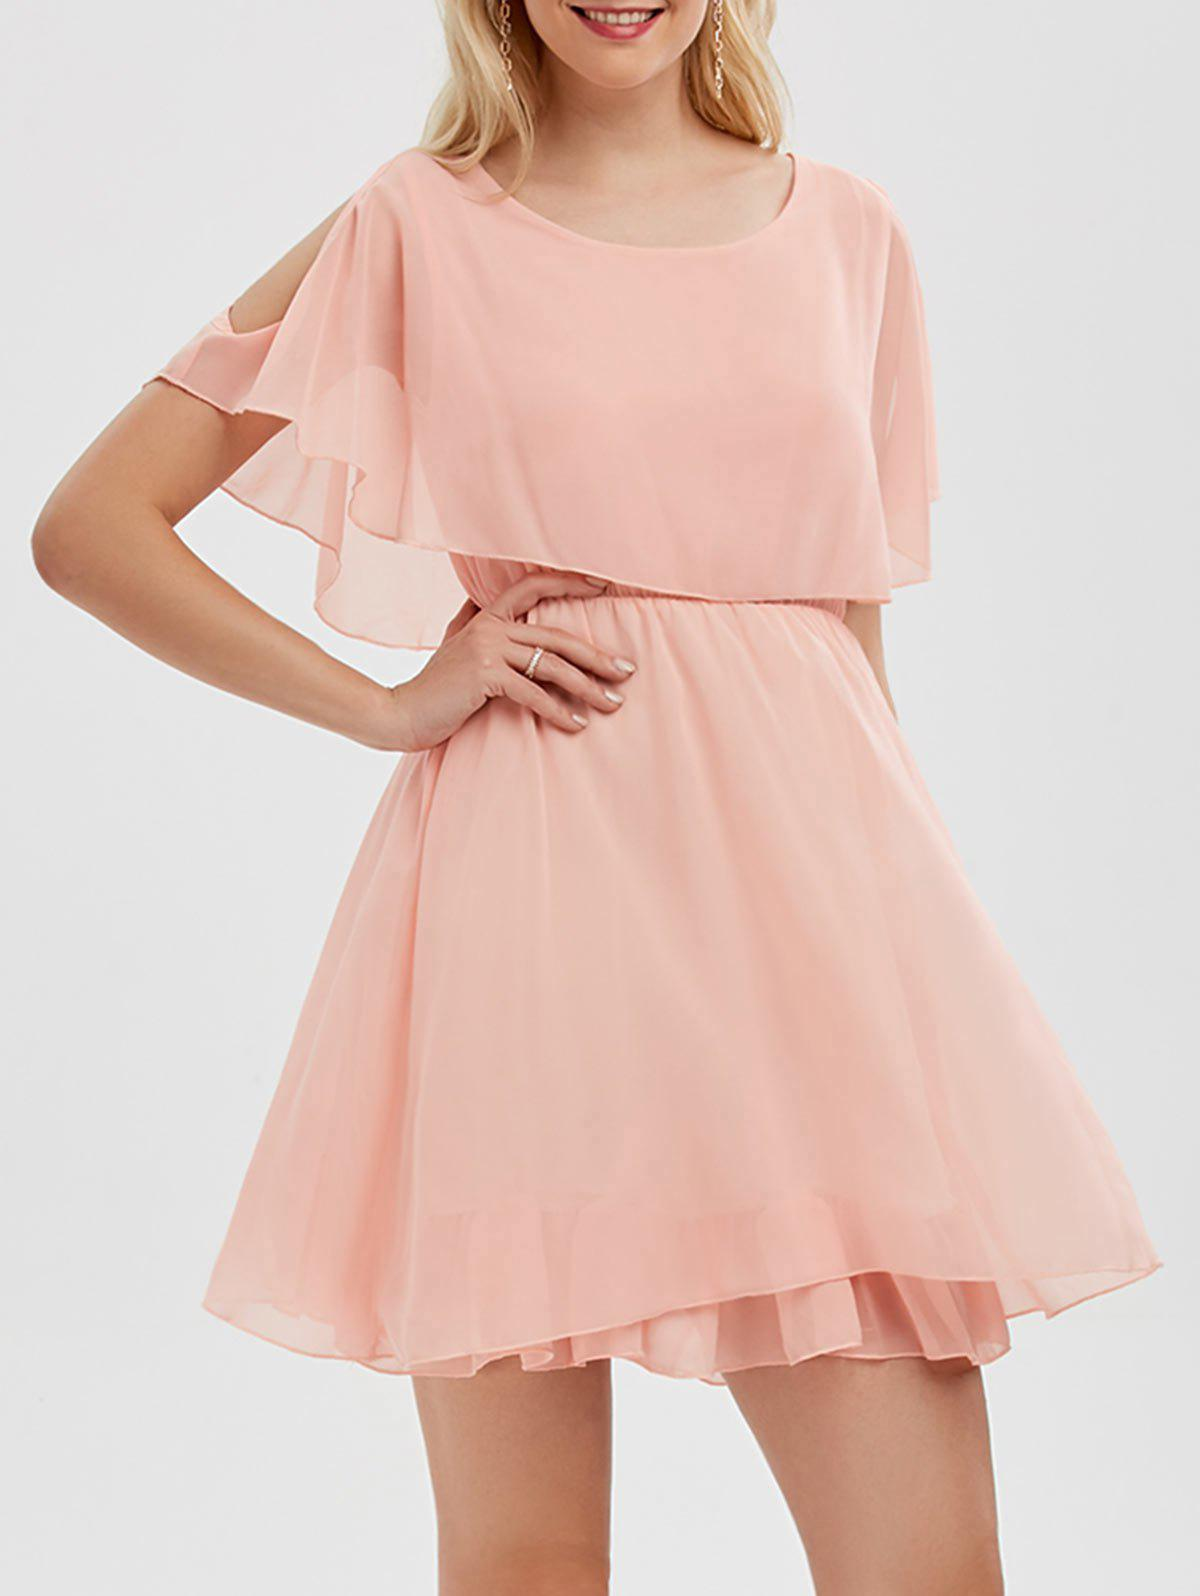 Ruffle Chiffon Cold Shoulder Mini Dress - ROSE PÂLE L